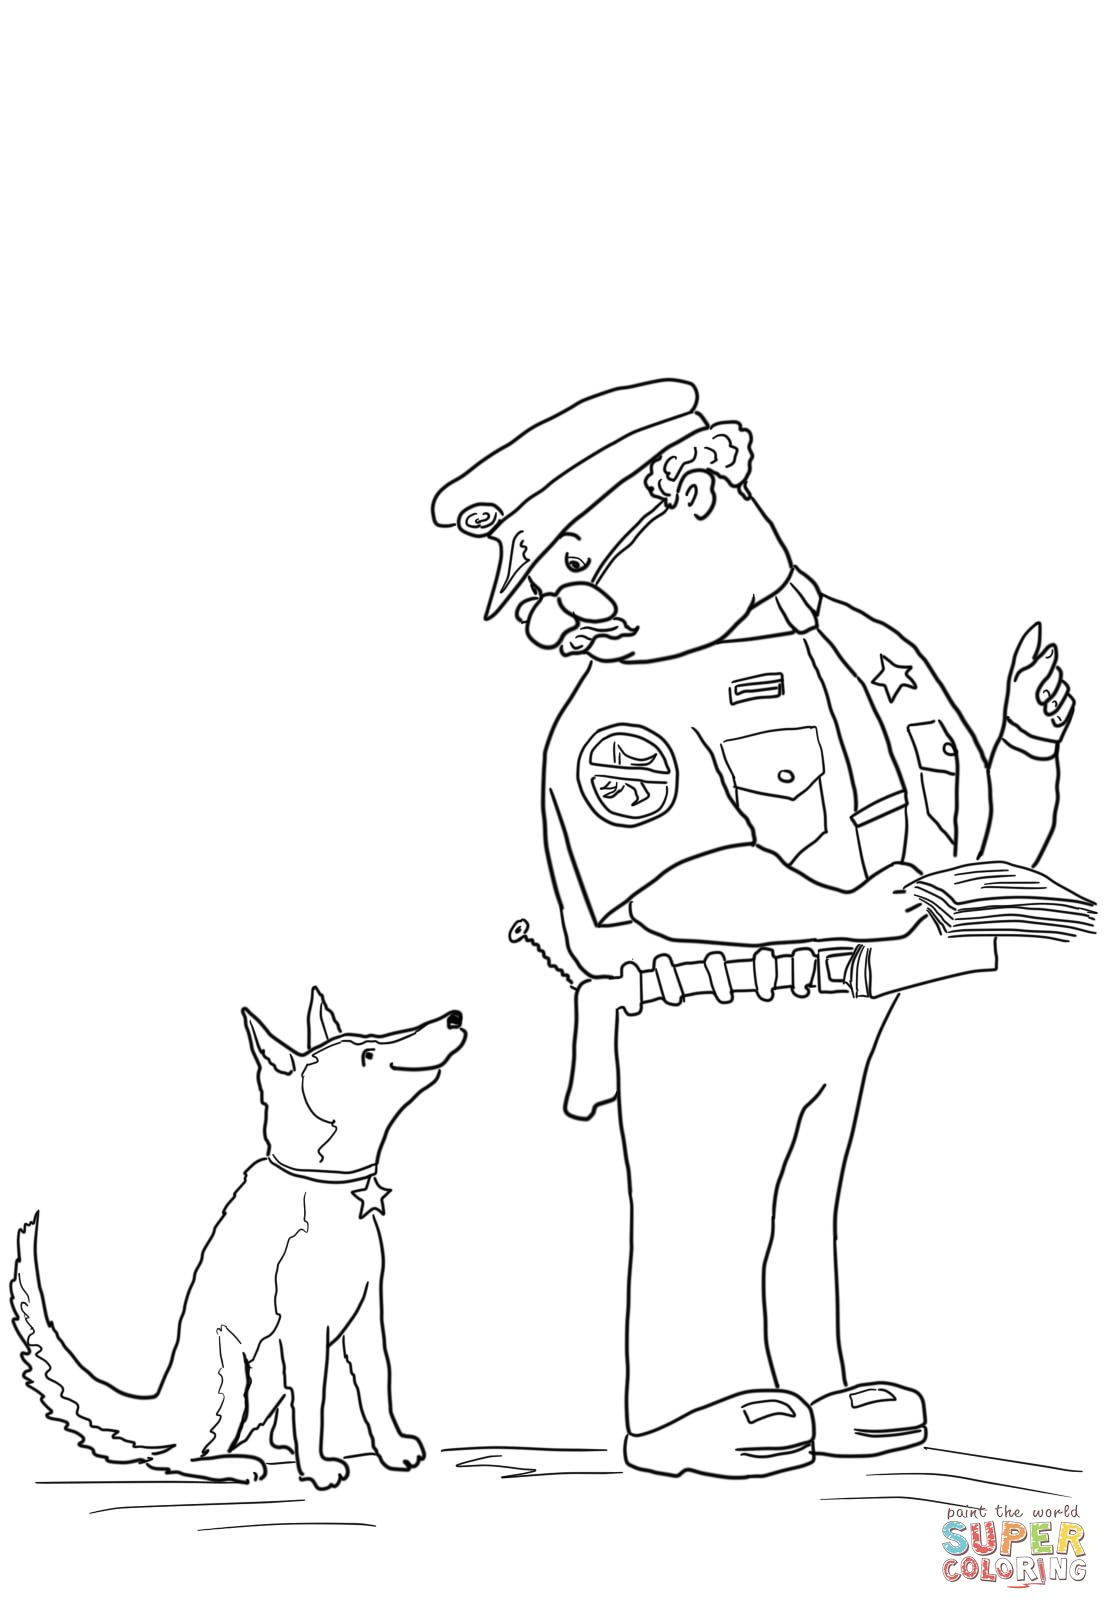 Worksheets Officer Buckle And Gloria Worksheets officer buckle and gloria with paper work coloring page page